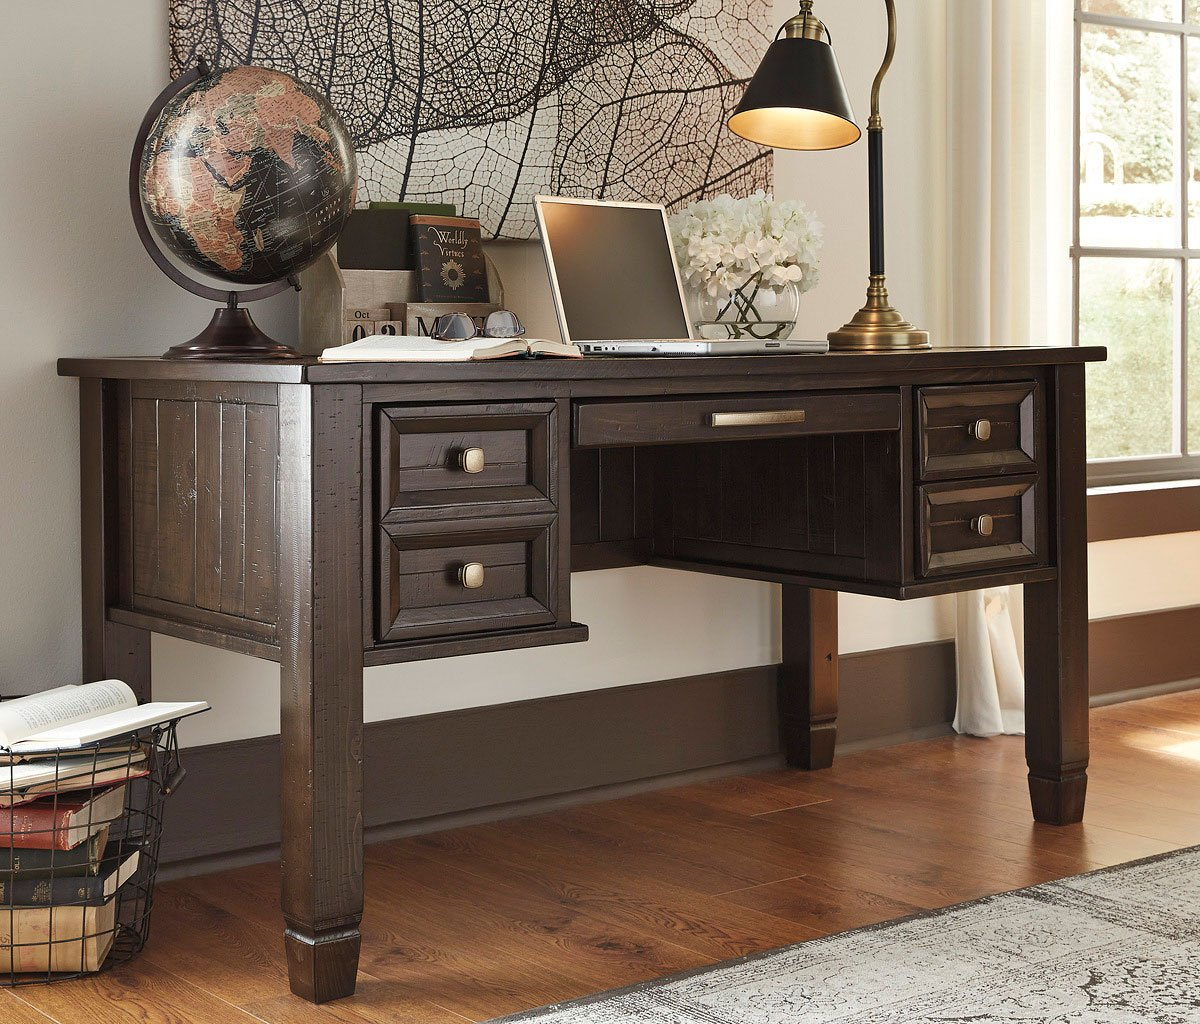 Townser Home Office Desk Home Office Desks Home Office Furniture Home Office